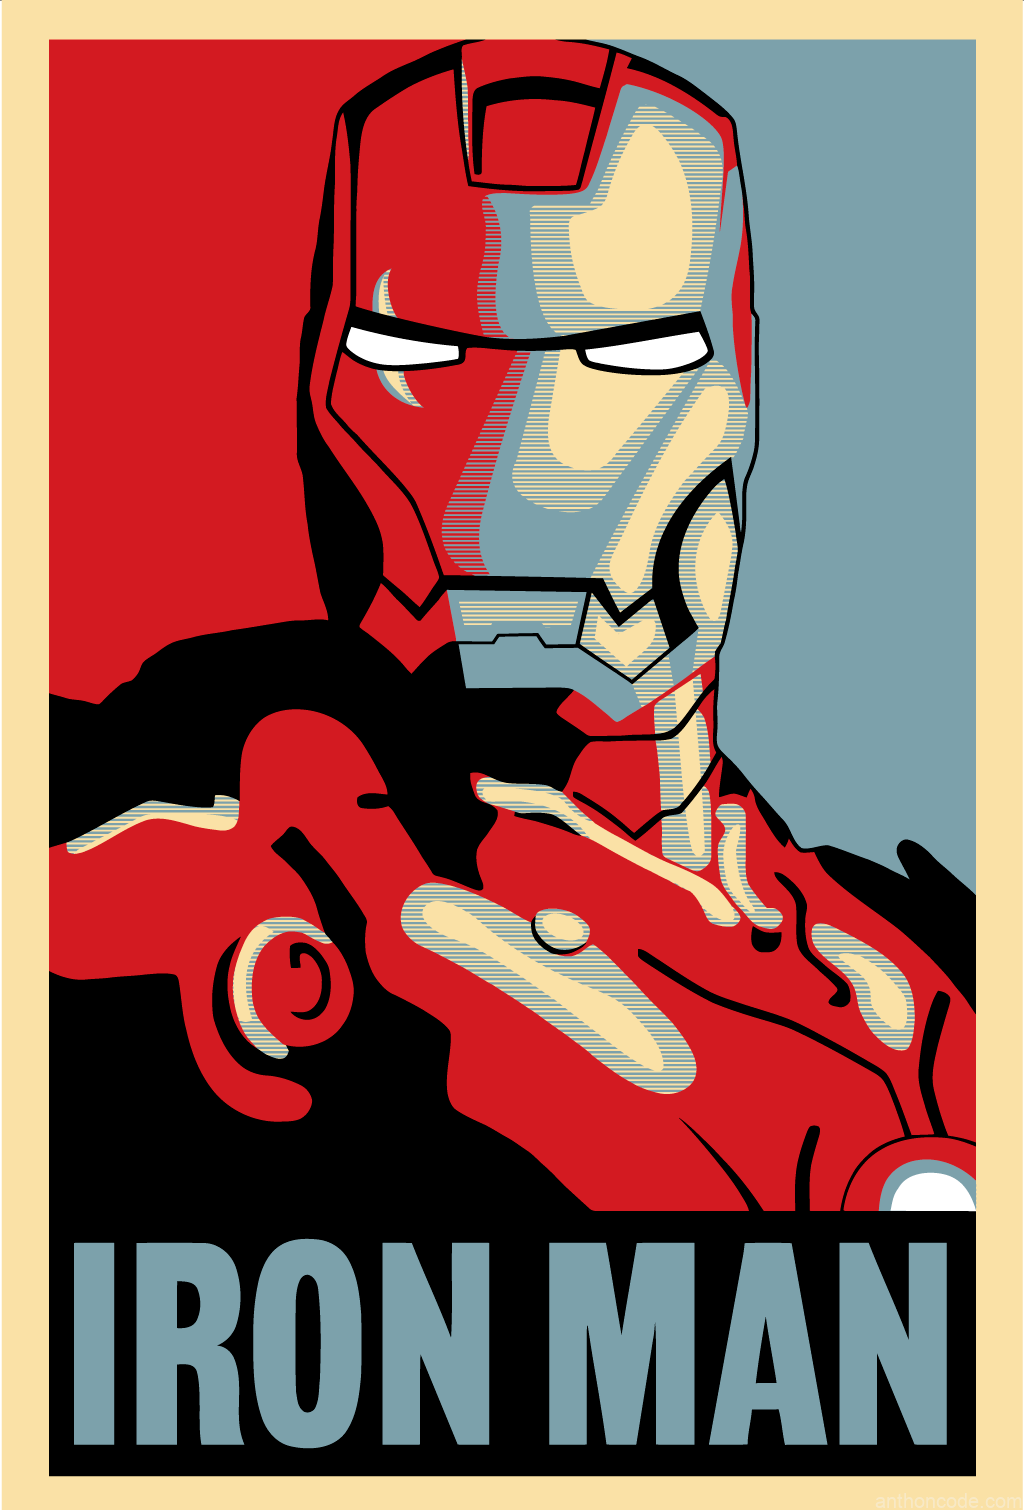 Iron Man 2 Shepard Fairey Art in Iron Man